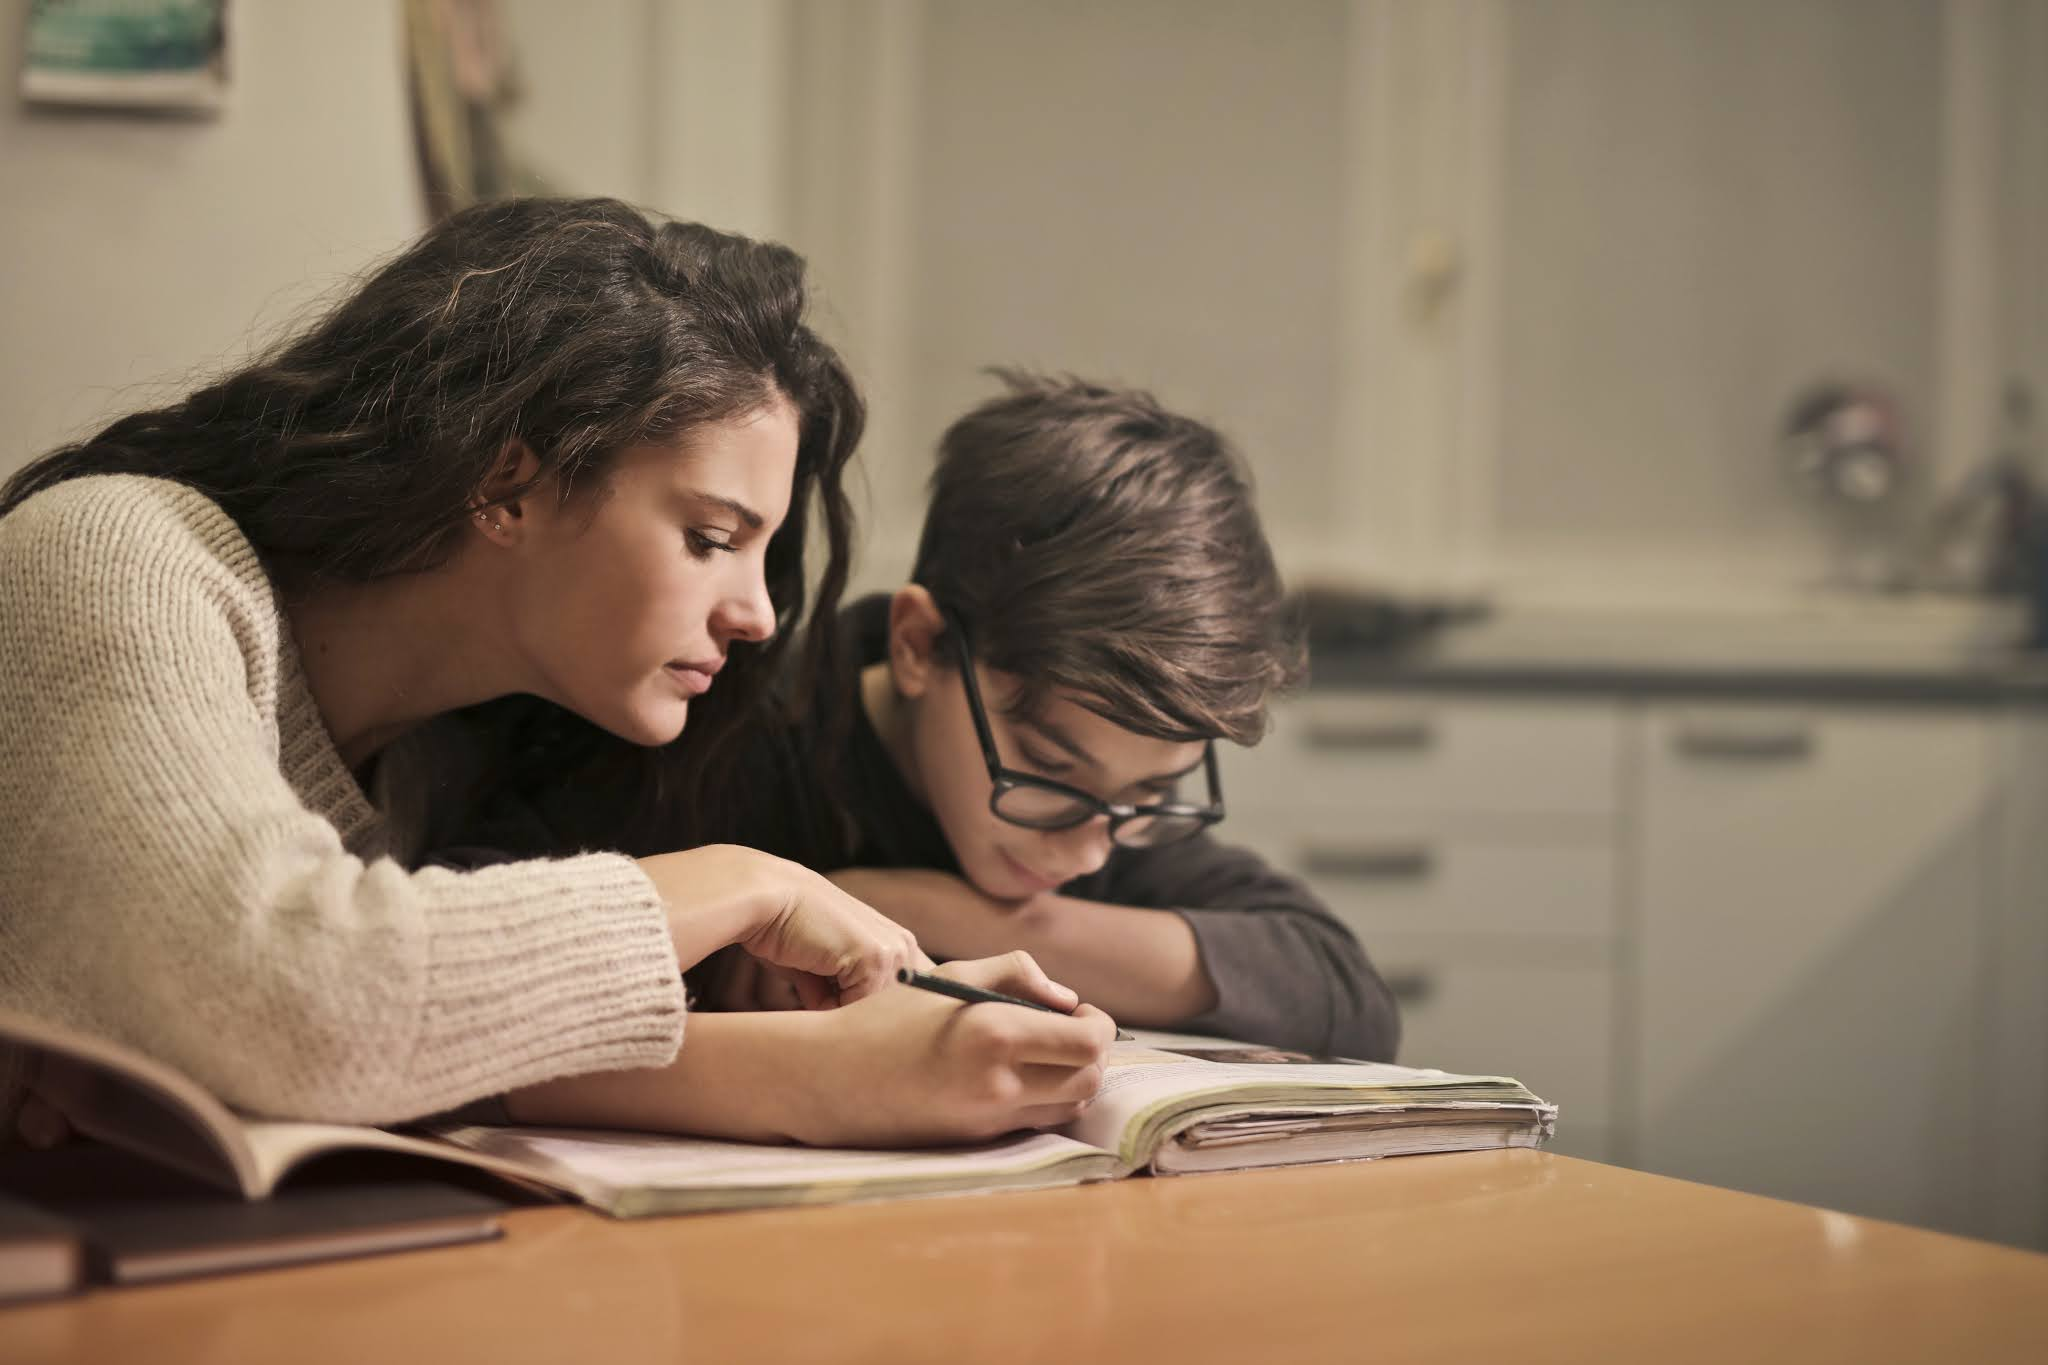 Tips for Working from Home while Homeschooling